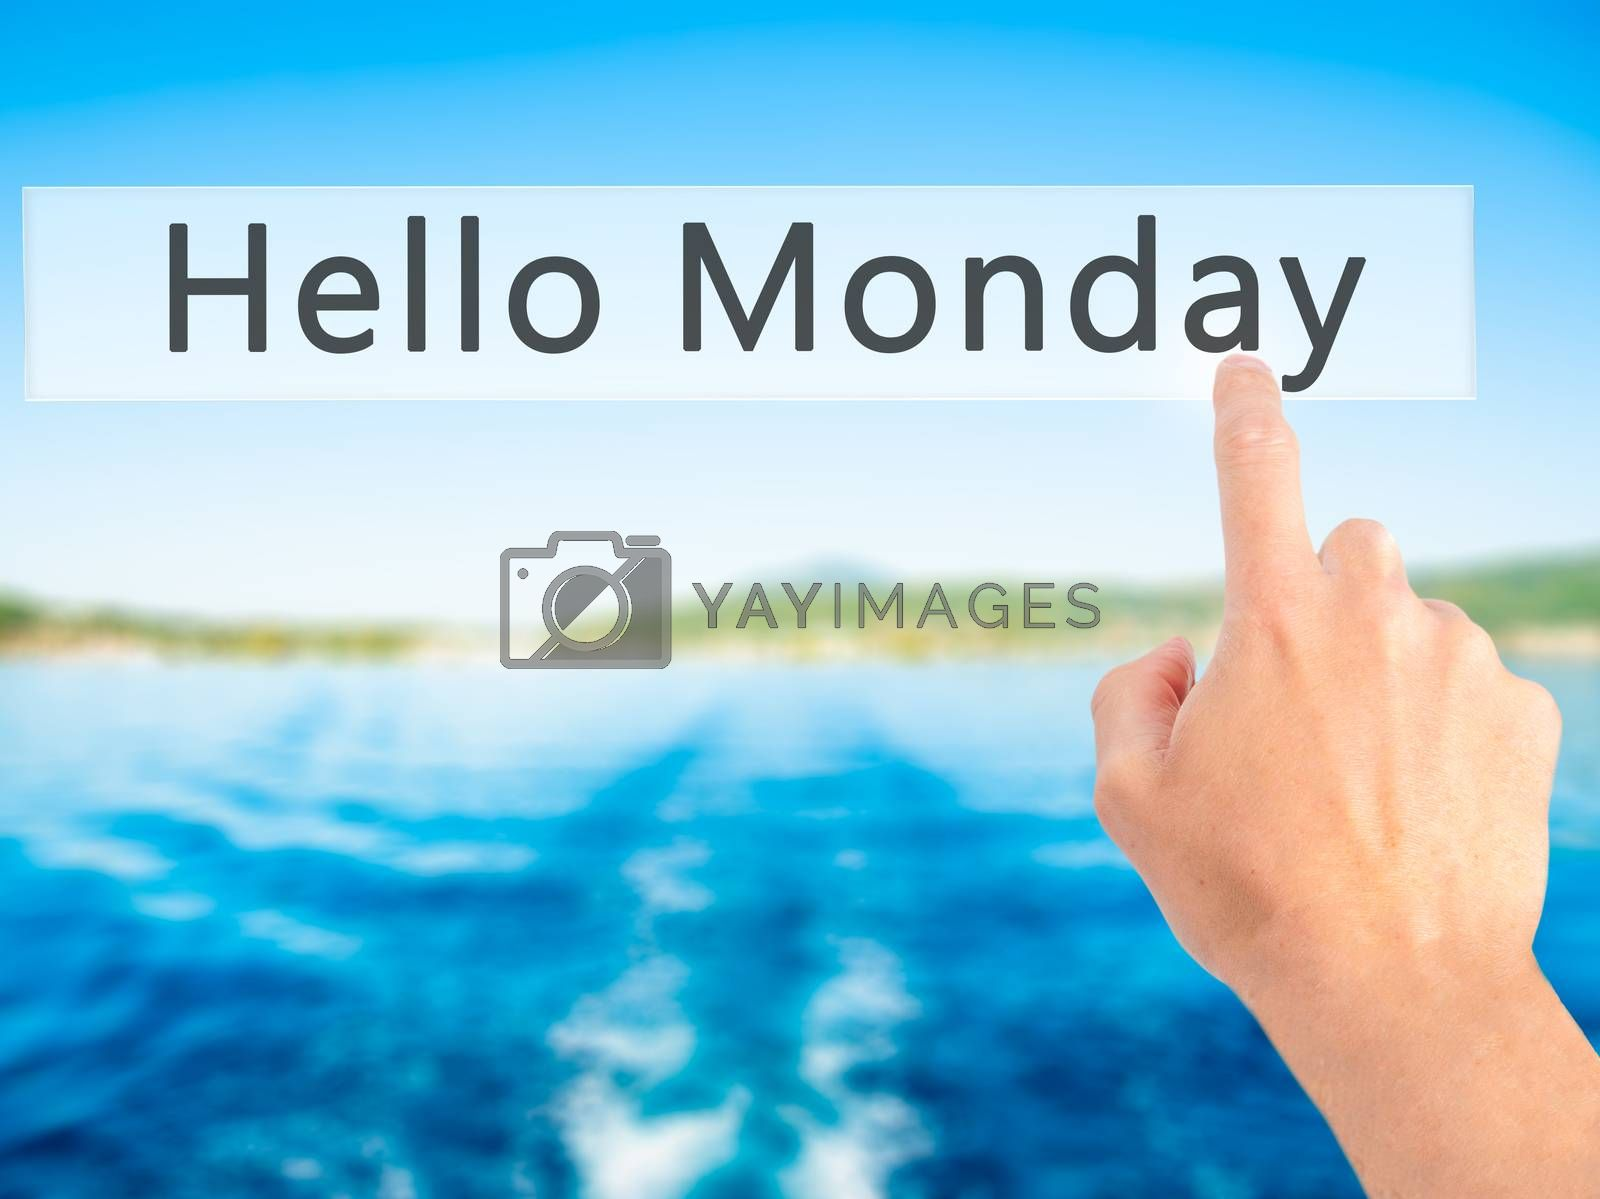 Hello Monday - Hand pressing a button on blurred background conc by jackald